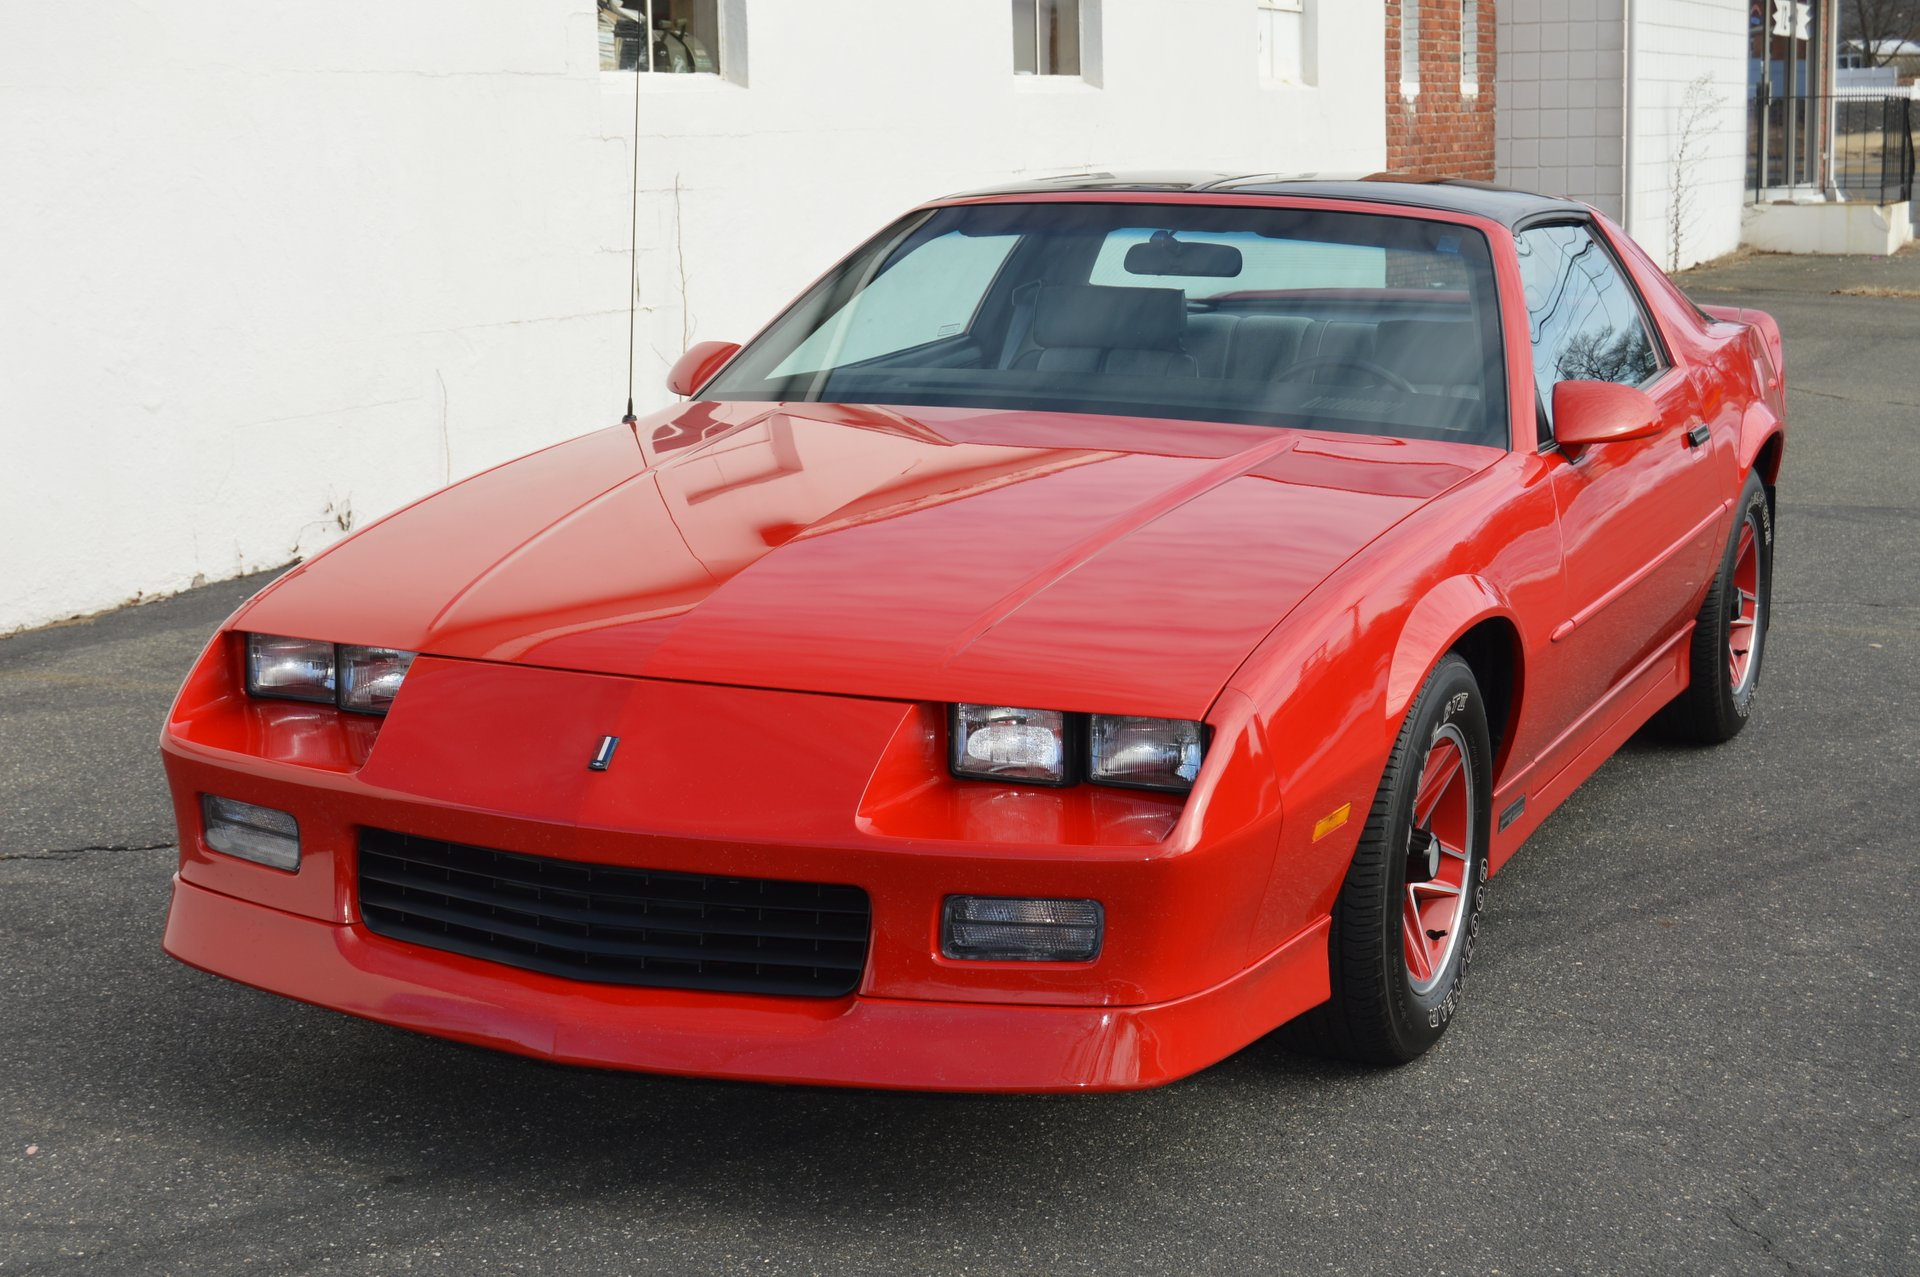 1989 Chevrolet Camaro RS for sale #64098 | Motorious